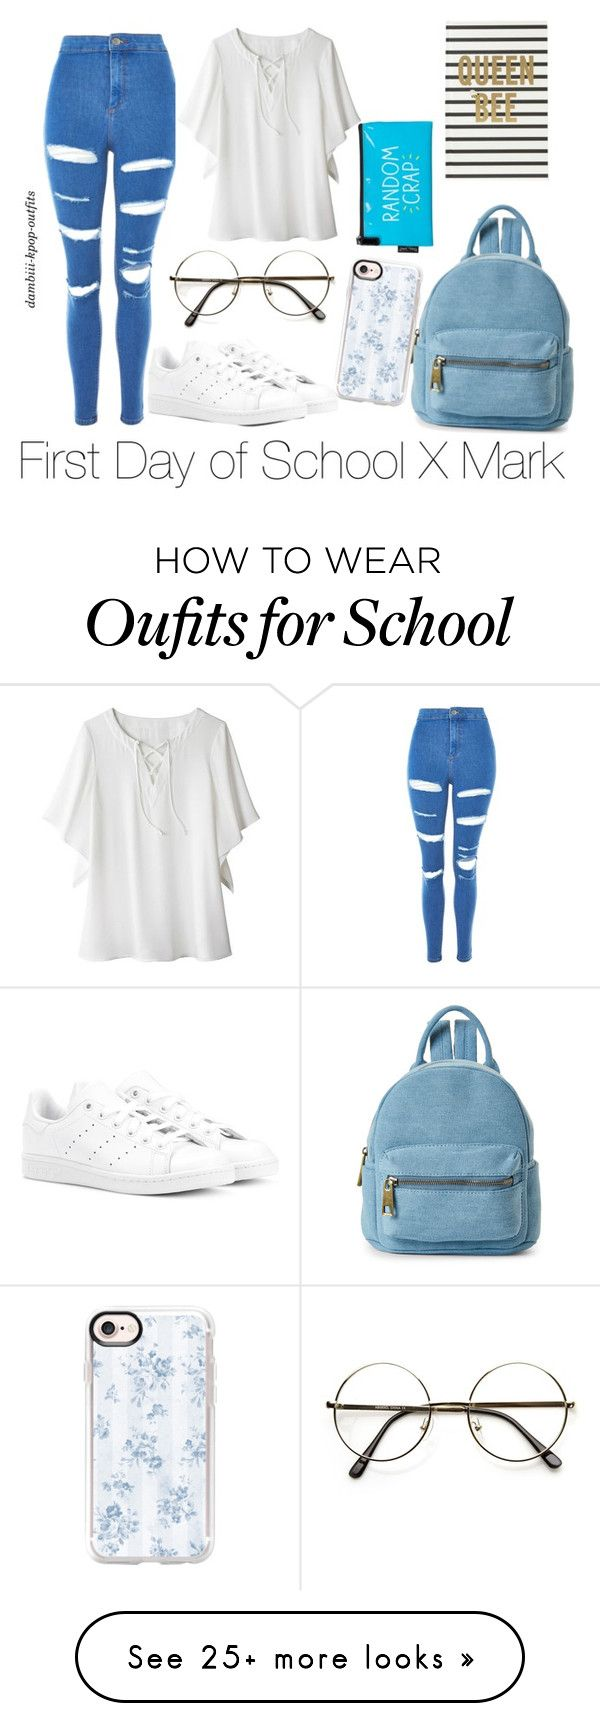 """First Day of School X Mark"" by dambiii on Polyvore featuring Topshop, Avon, adidas Originals, Street Level, Casetify, Kate Spade, Happy Jackson, mark, nct and NCT127"